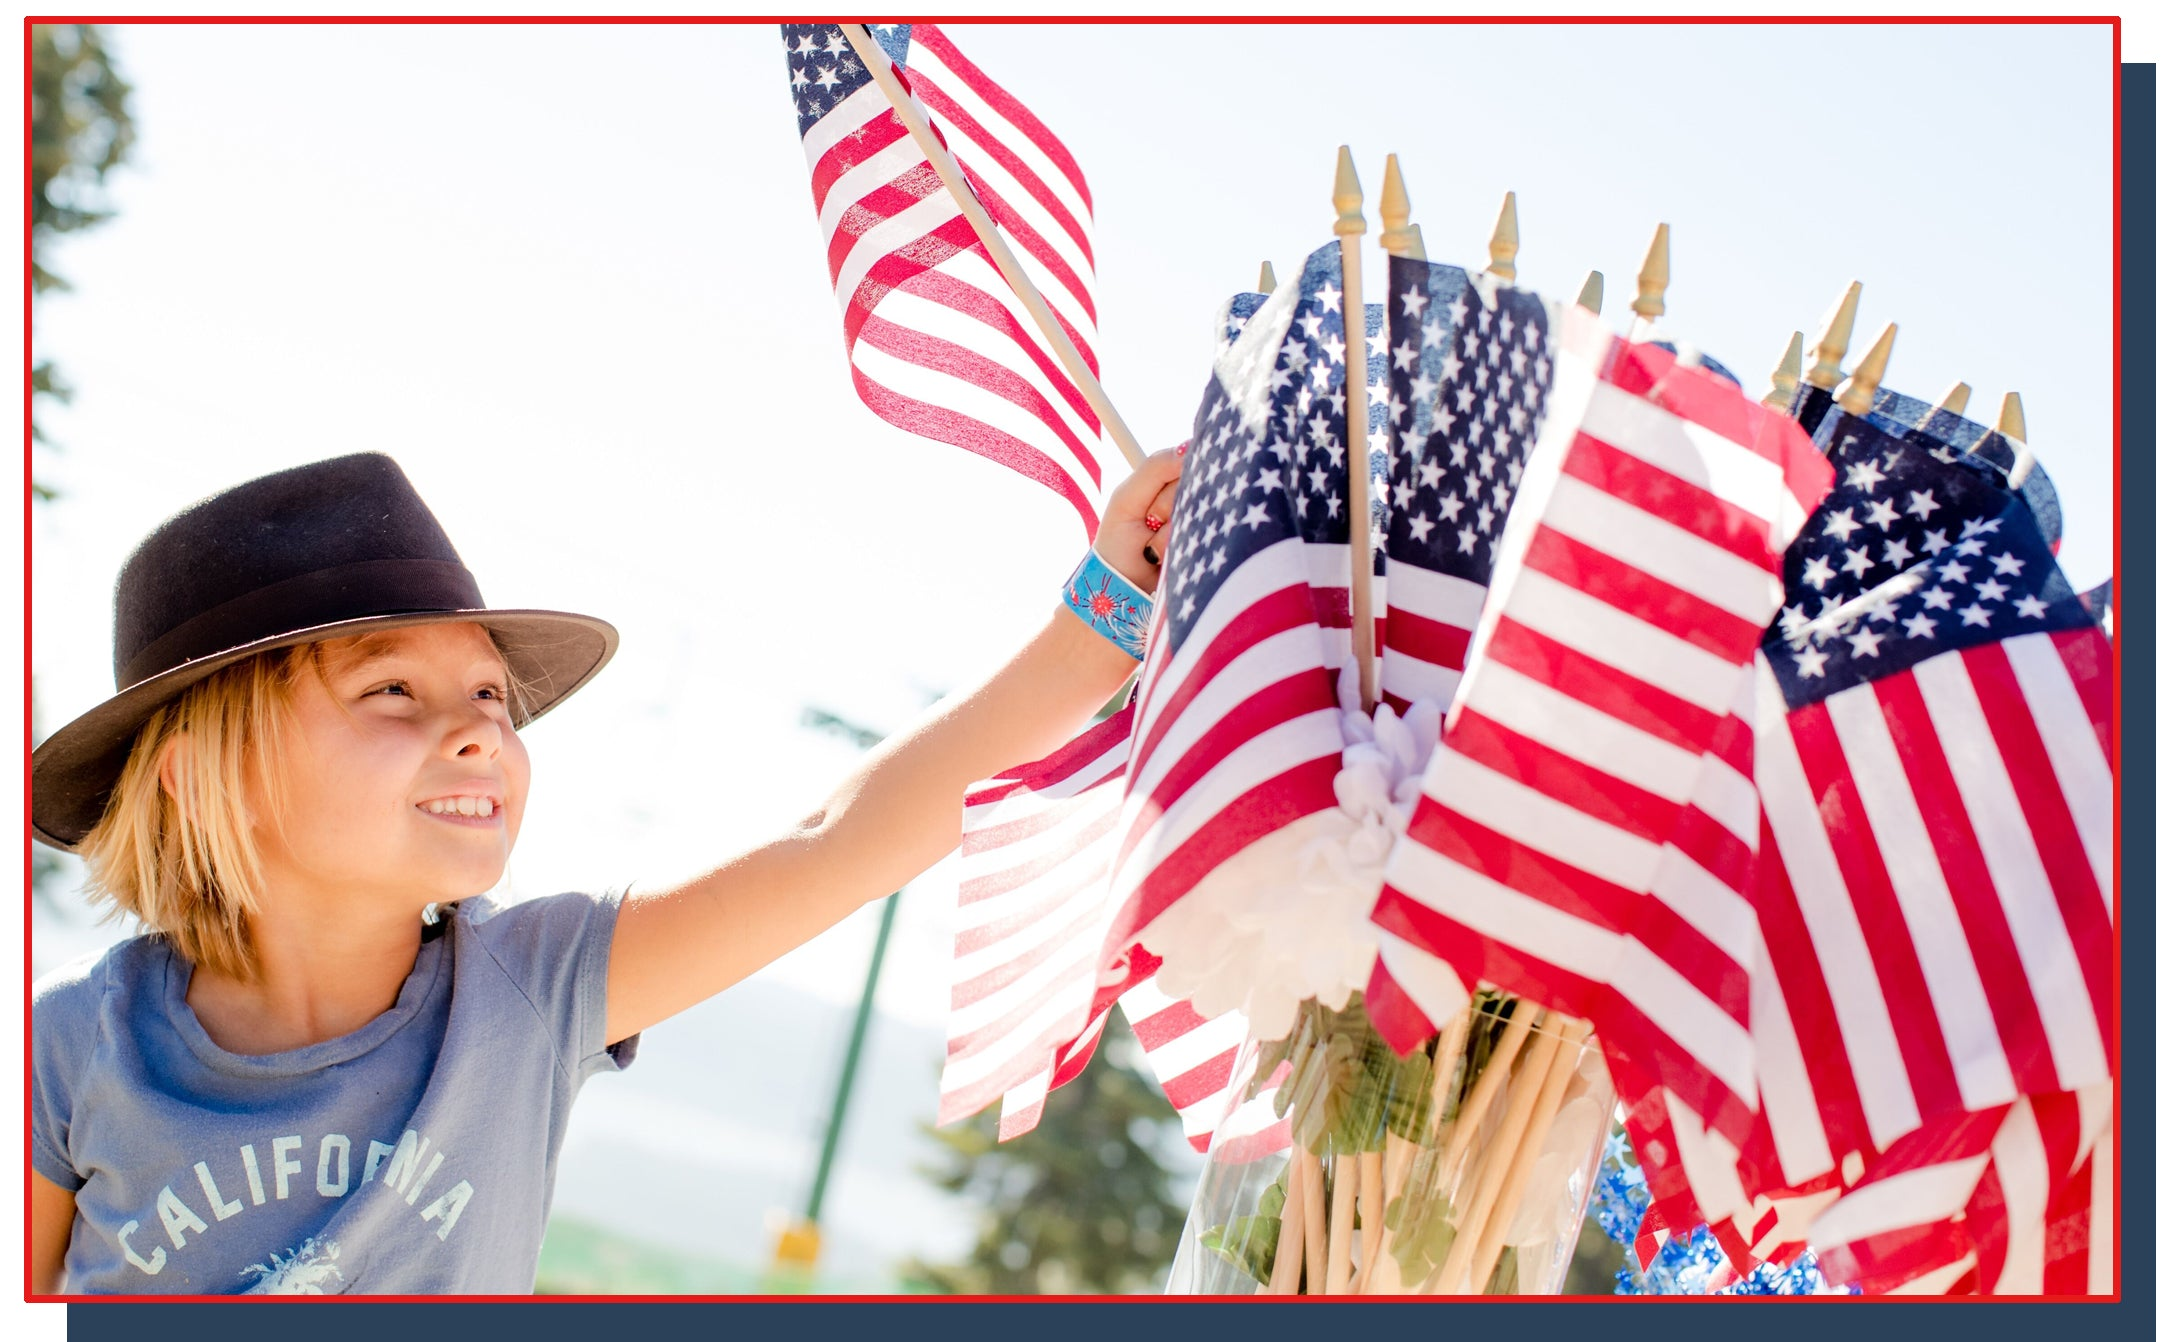 Child with USA flags